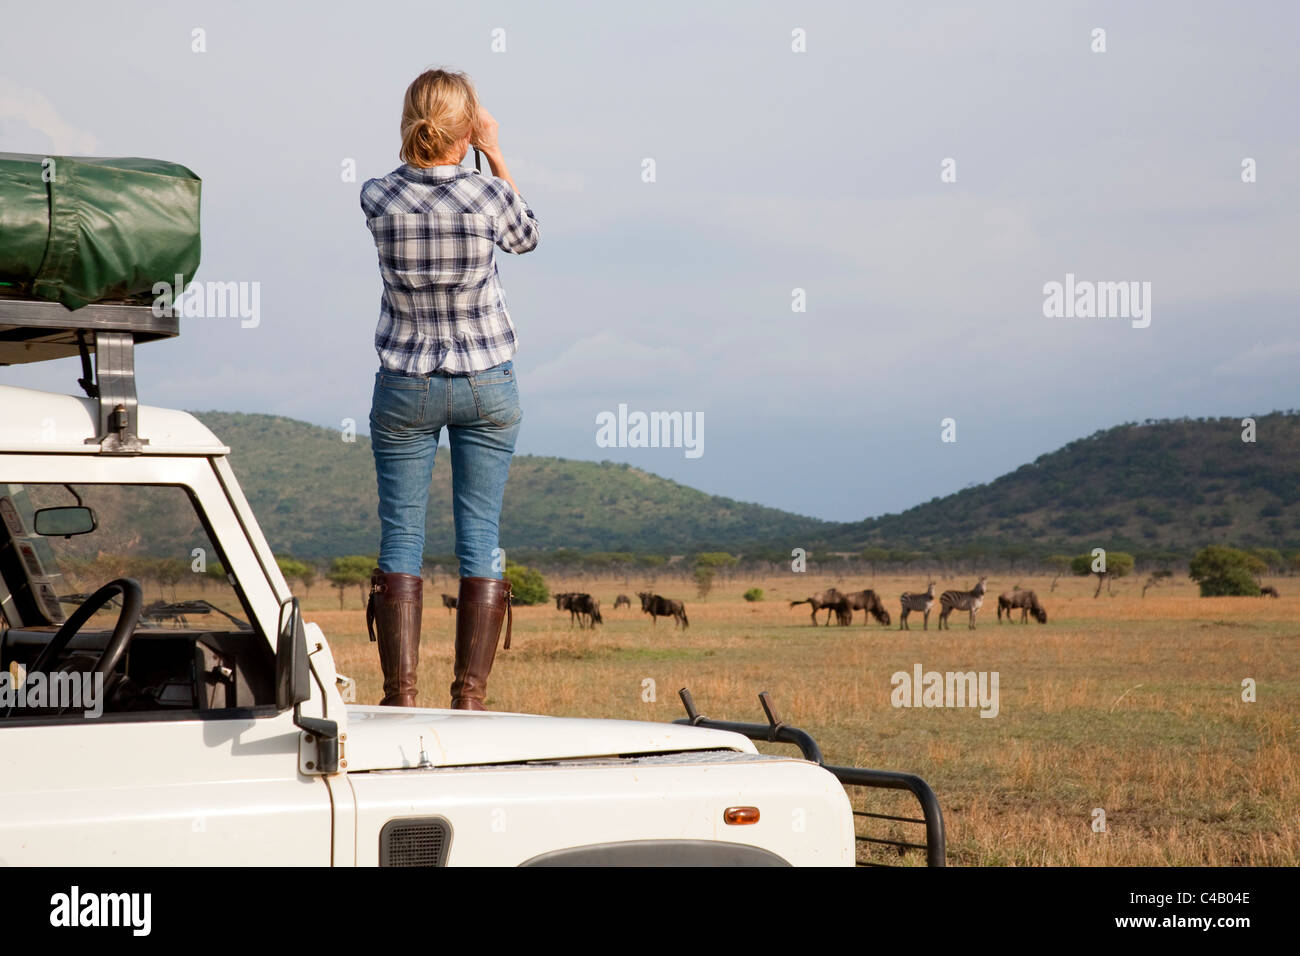 Tanzania, Serengeti. A tourist stands on the bonnet of her Land Rover to look at the wildebeest. MR. Stock Photo